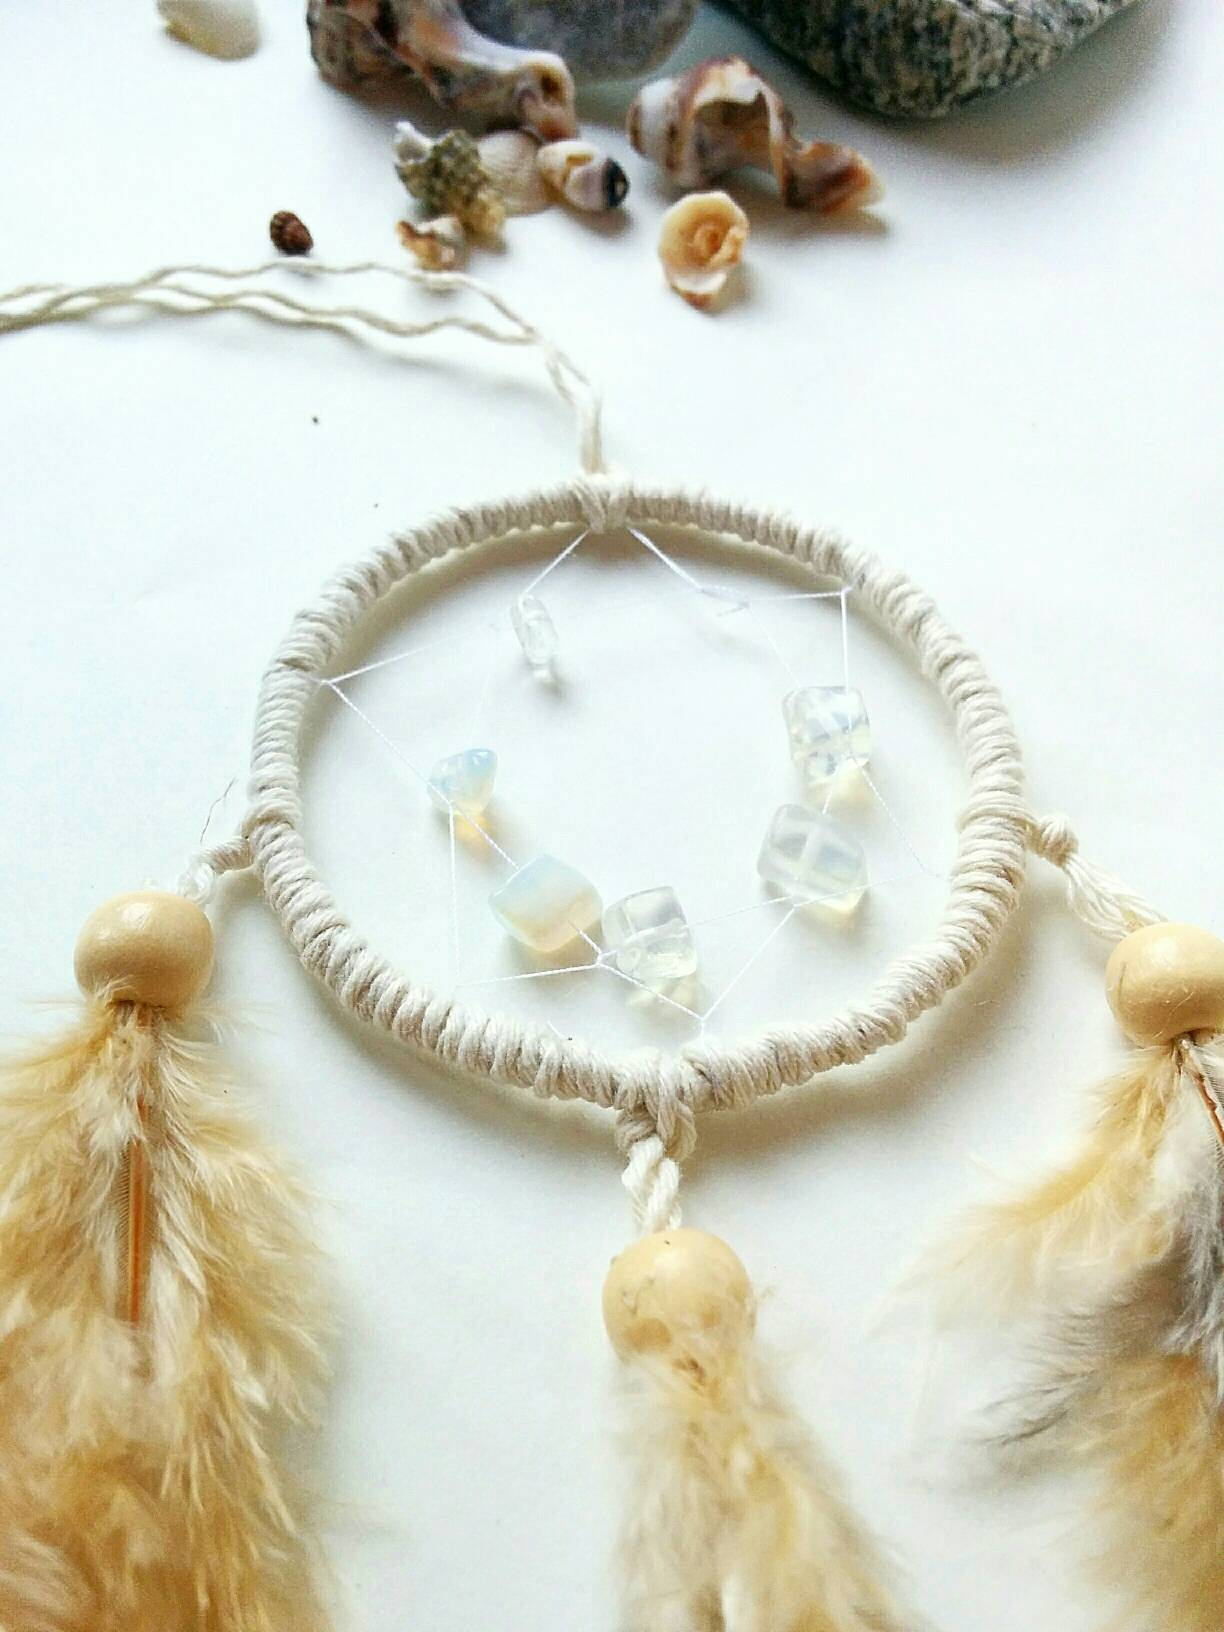 Mini dreamcatcher shell decor, bohemian car decor, boho party favors, party favor dreamcatcher, boho dorm room decor,boho dreamcatcher